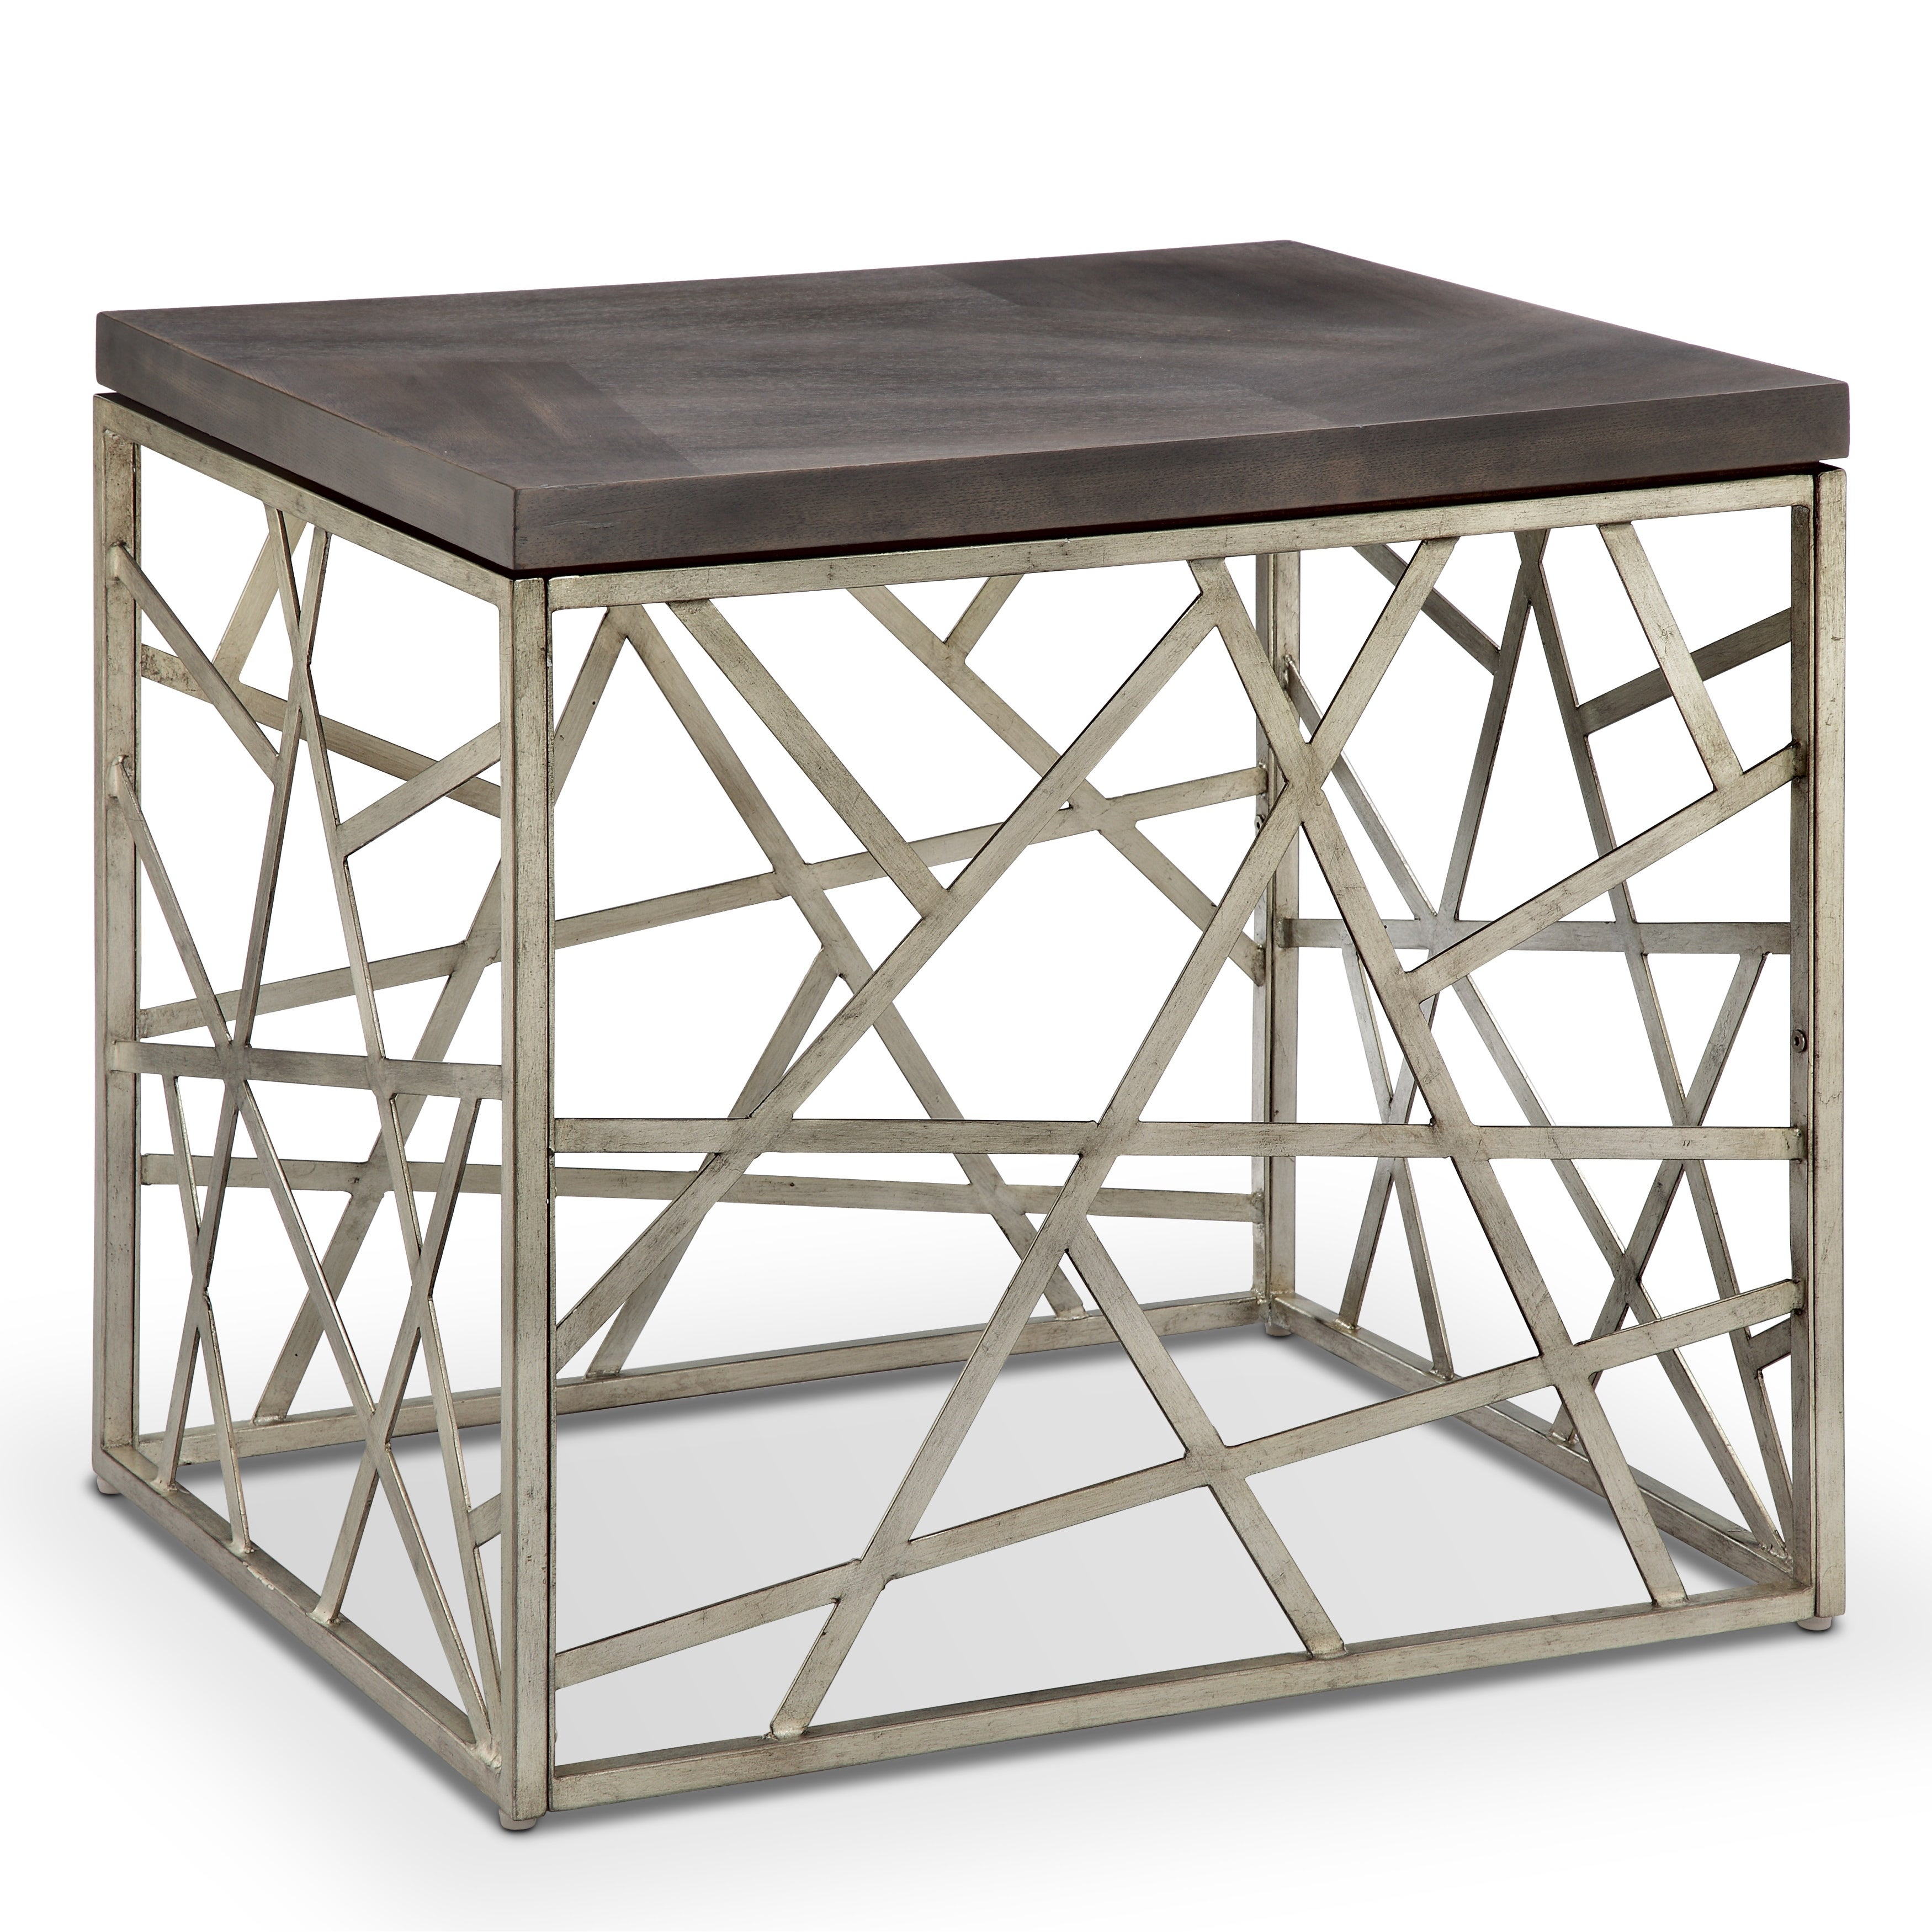 tribeca contemporary distressed silver and smoke grey end table rectangular tables free shipping today oval maple coffee pallet furn threshold furniture assembly instructions